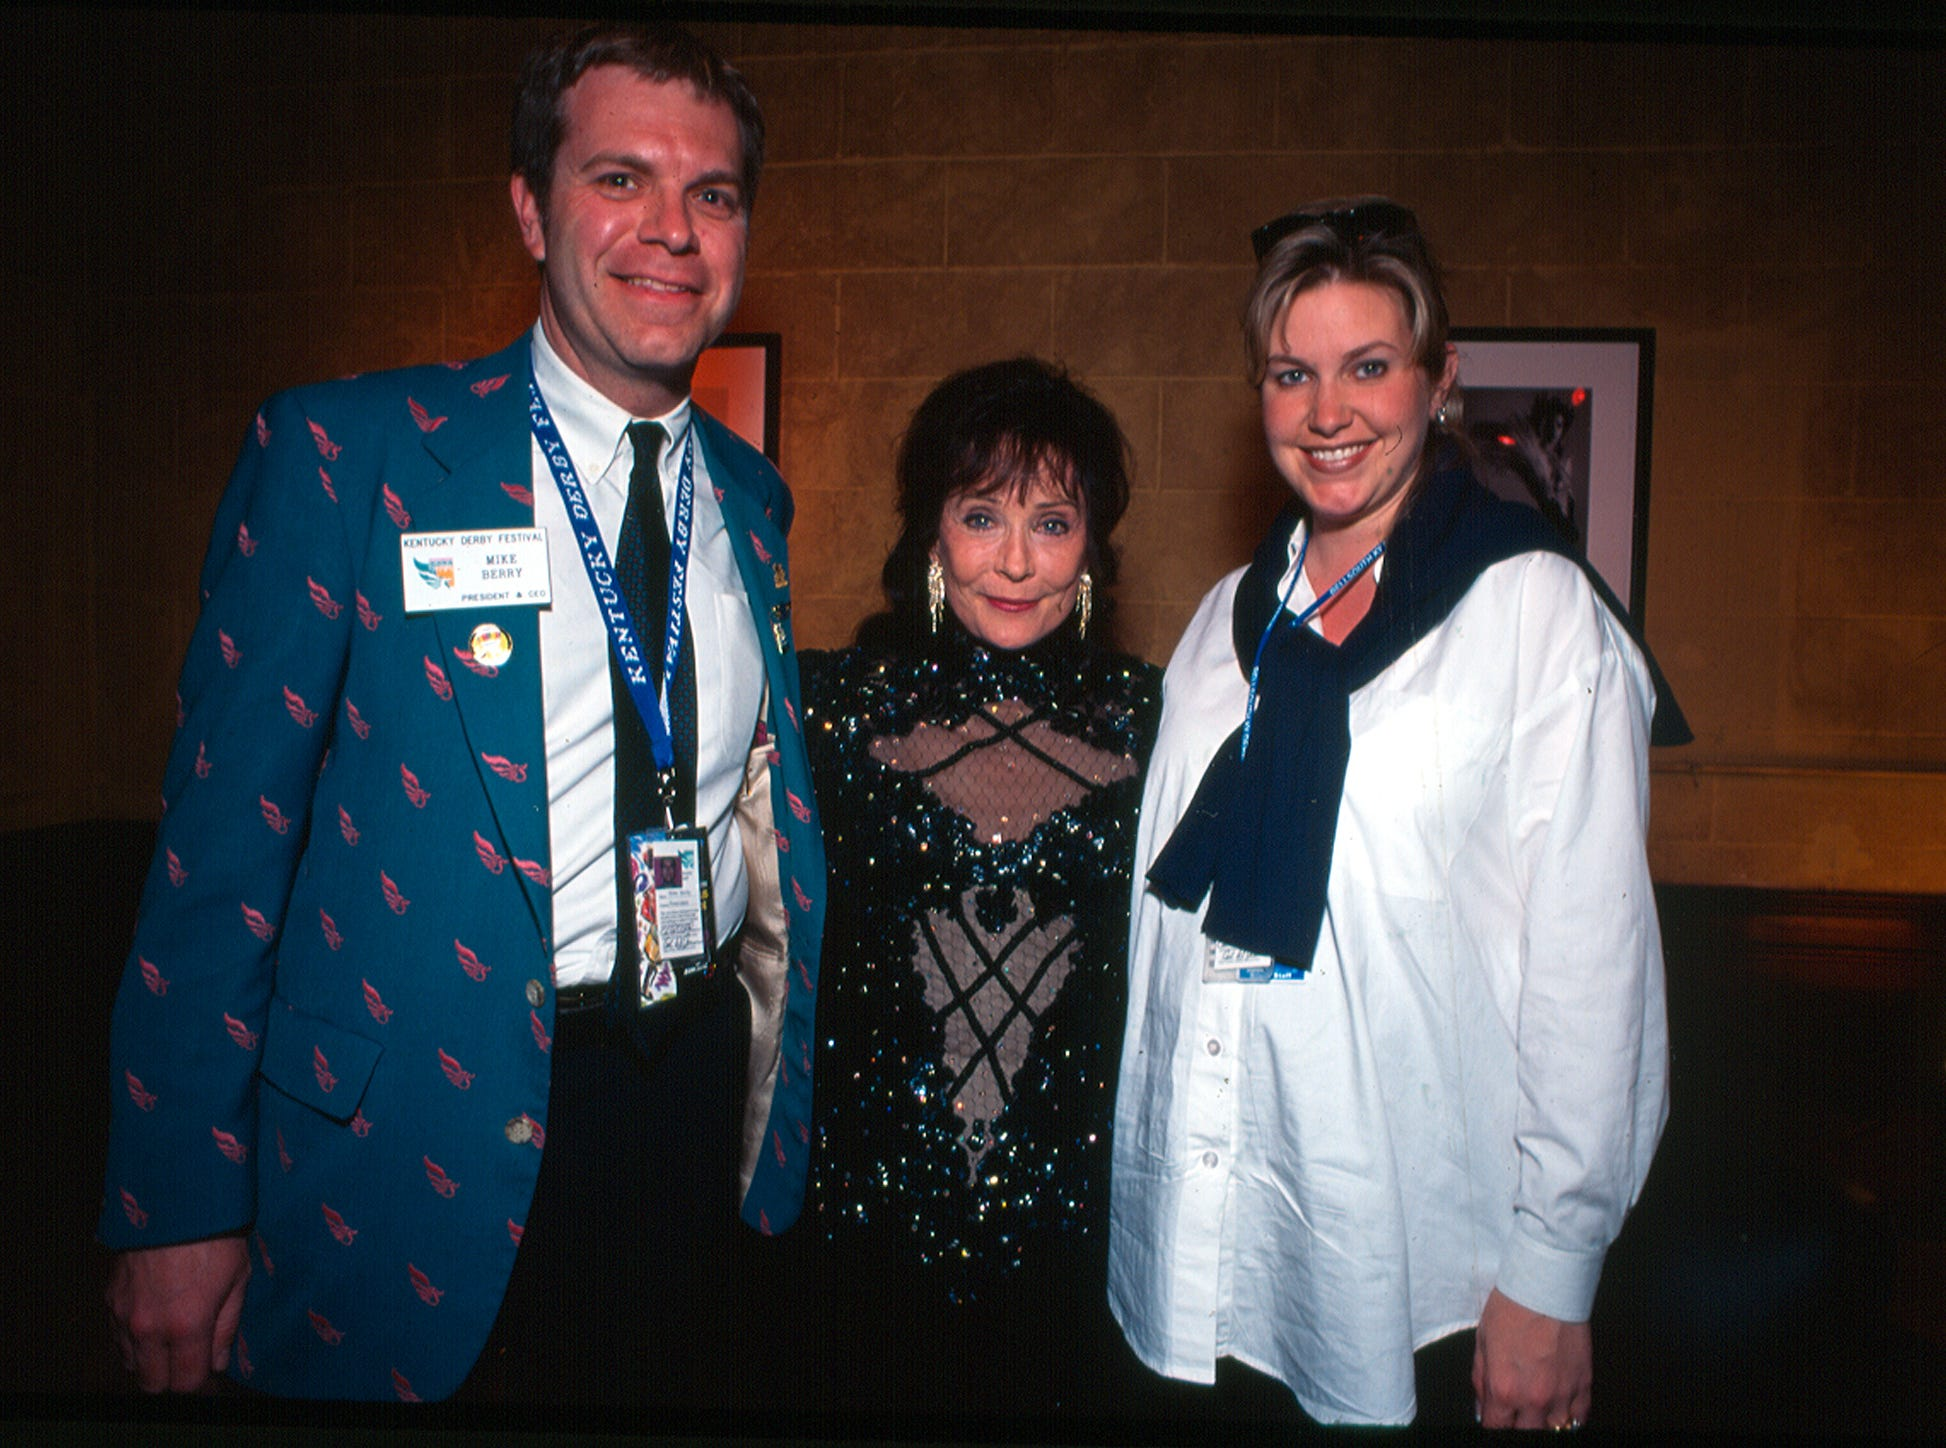 Mike Berry pictured with Loretta Lynn, center, and Stacey Yates, former vice president of communications for KDF, in 1999. Berry is retiring as KDF's president and CEO in 2019.